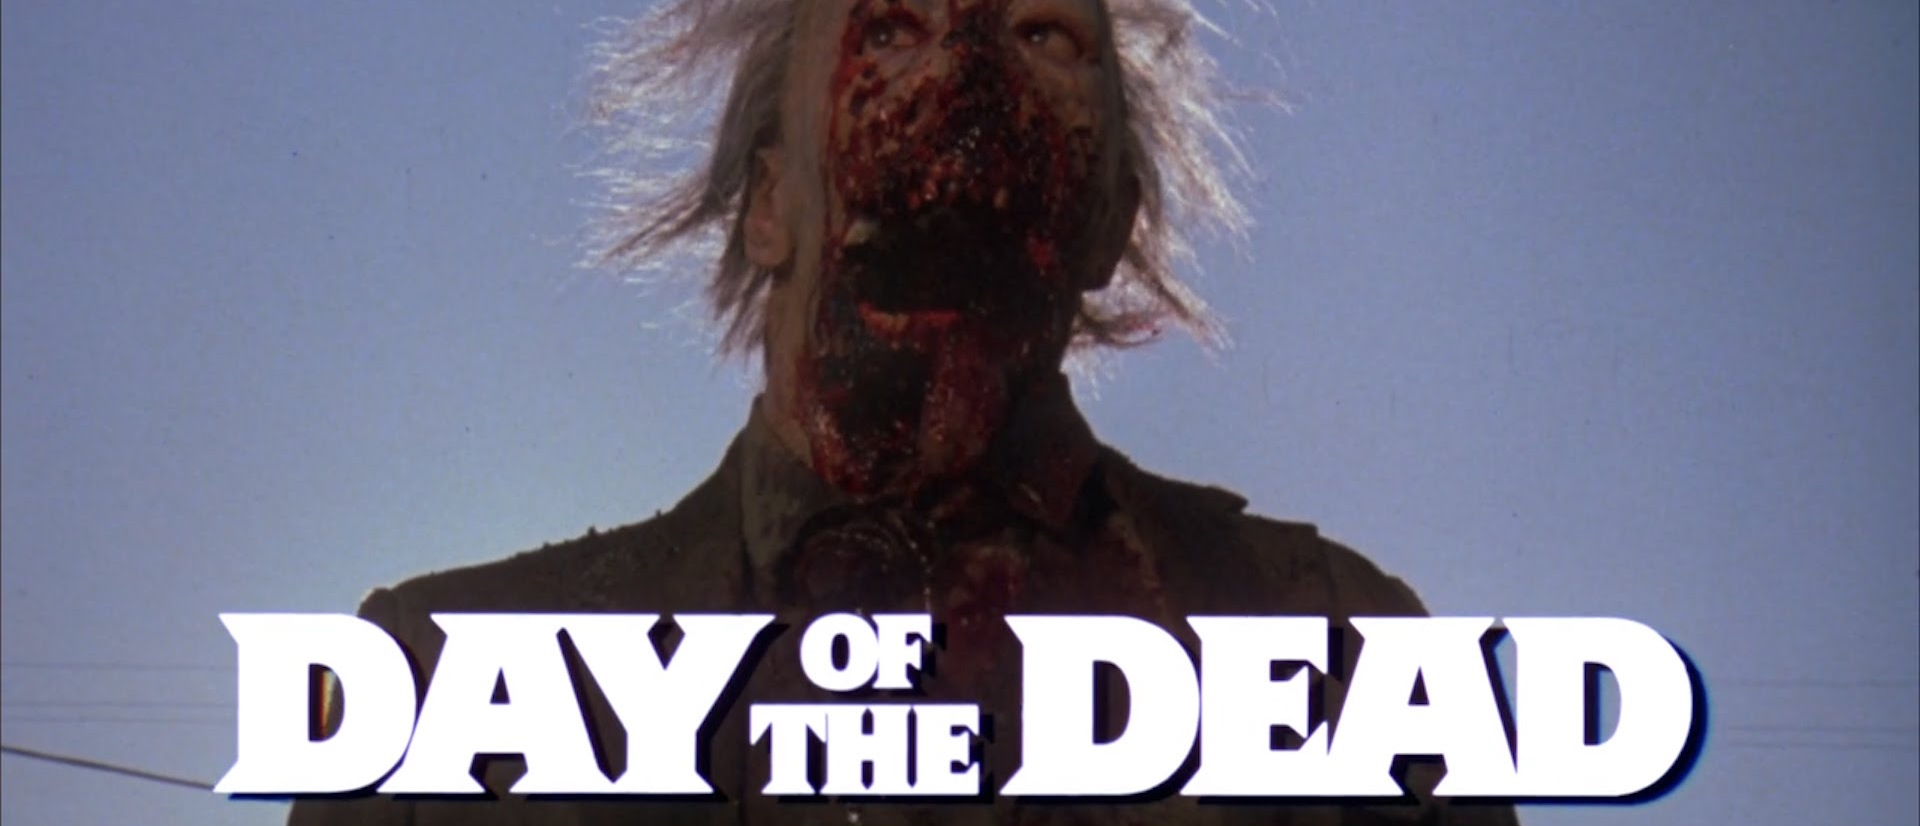 Day of the Dead Series Ordered With The Void Director Steven Kostanski